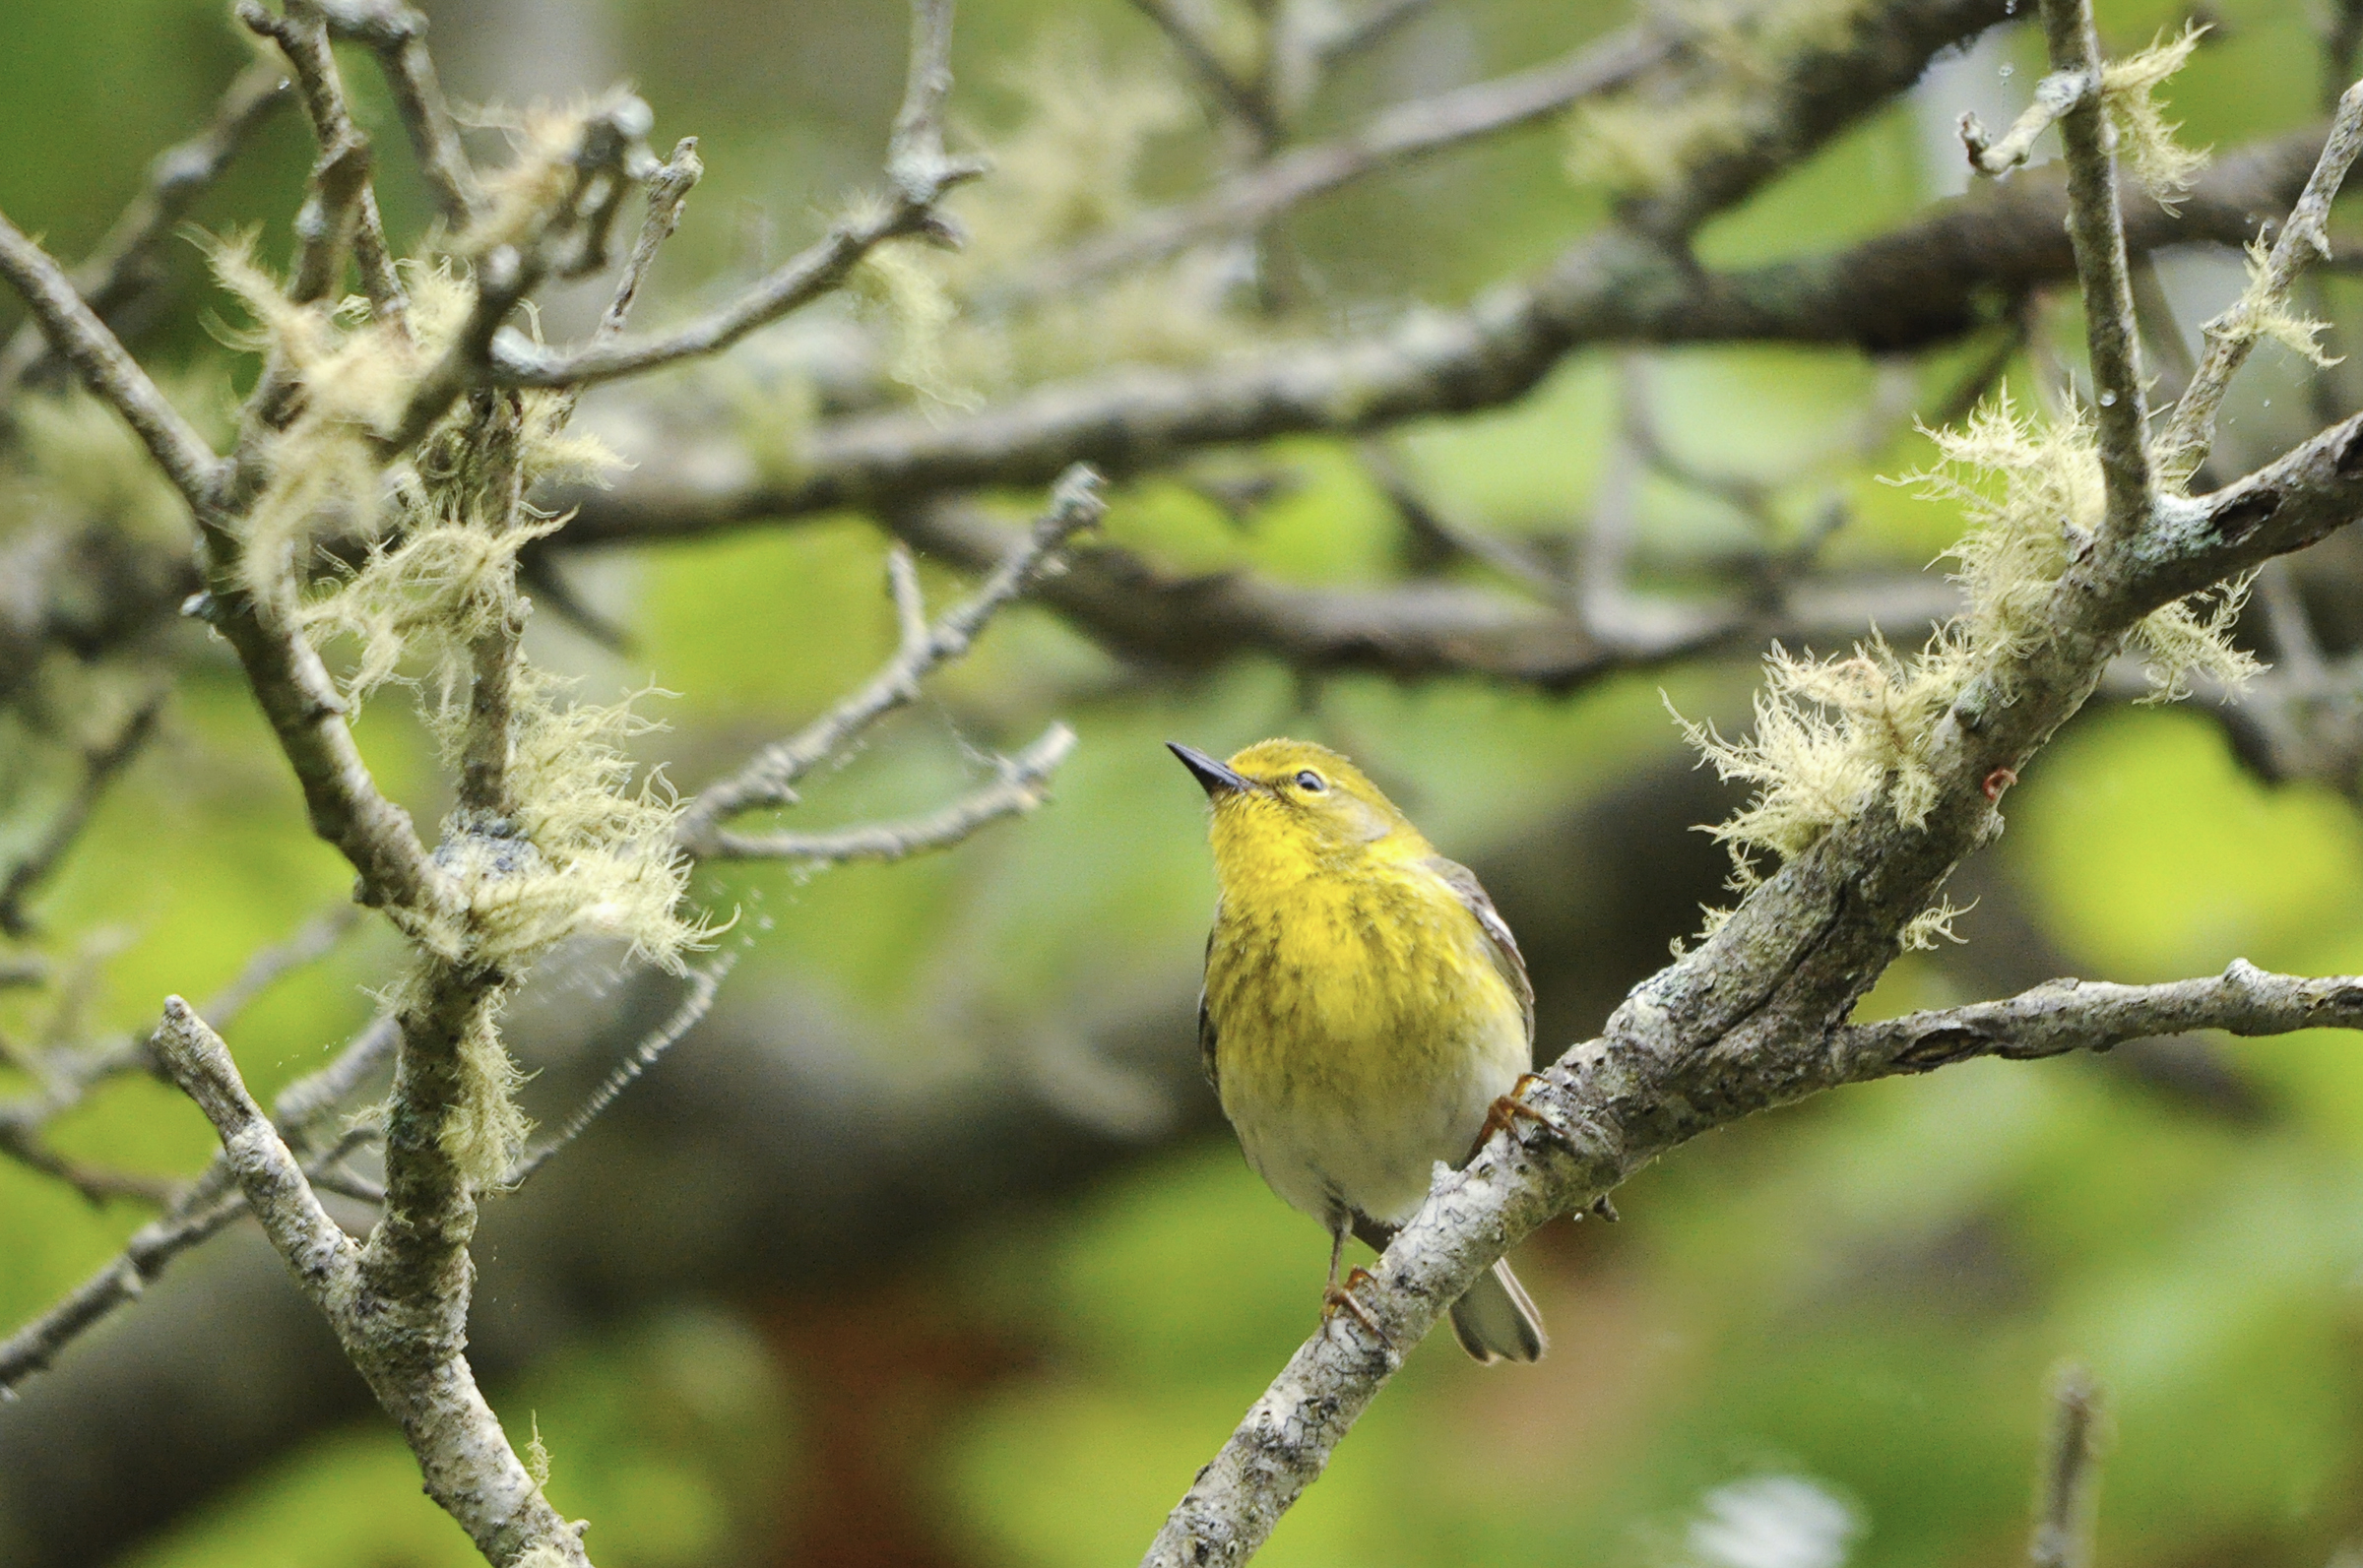 15 pine warbler white oak pitch pine forest putneypics flickr cc%28by nc%202.0%29